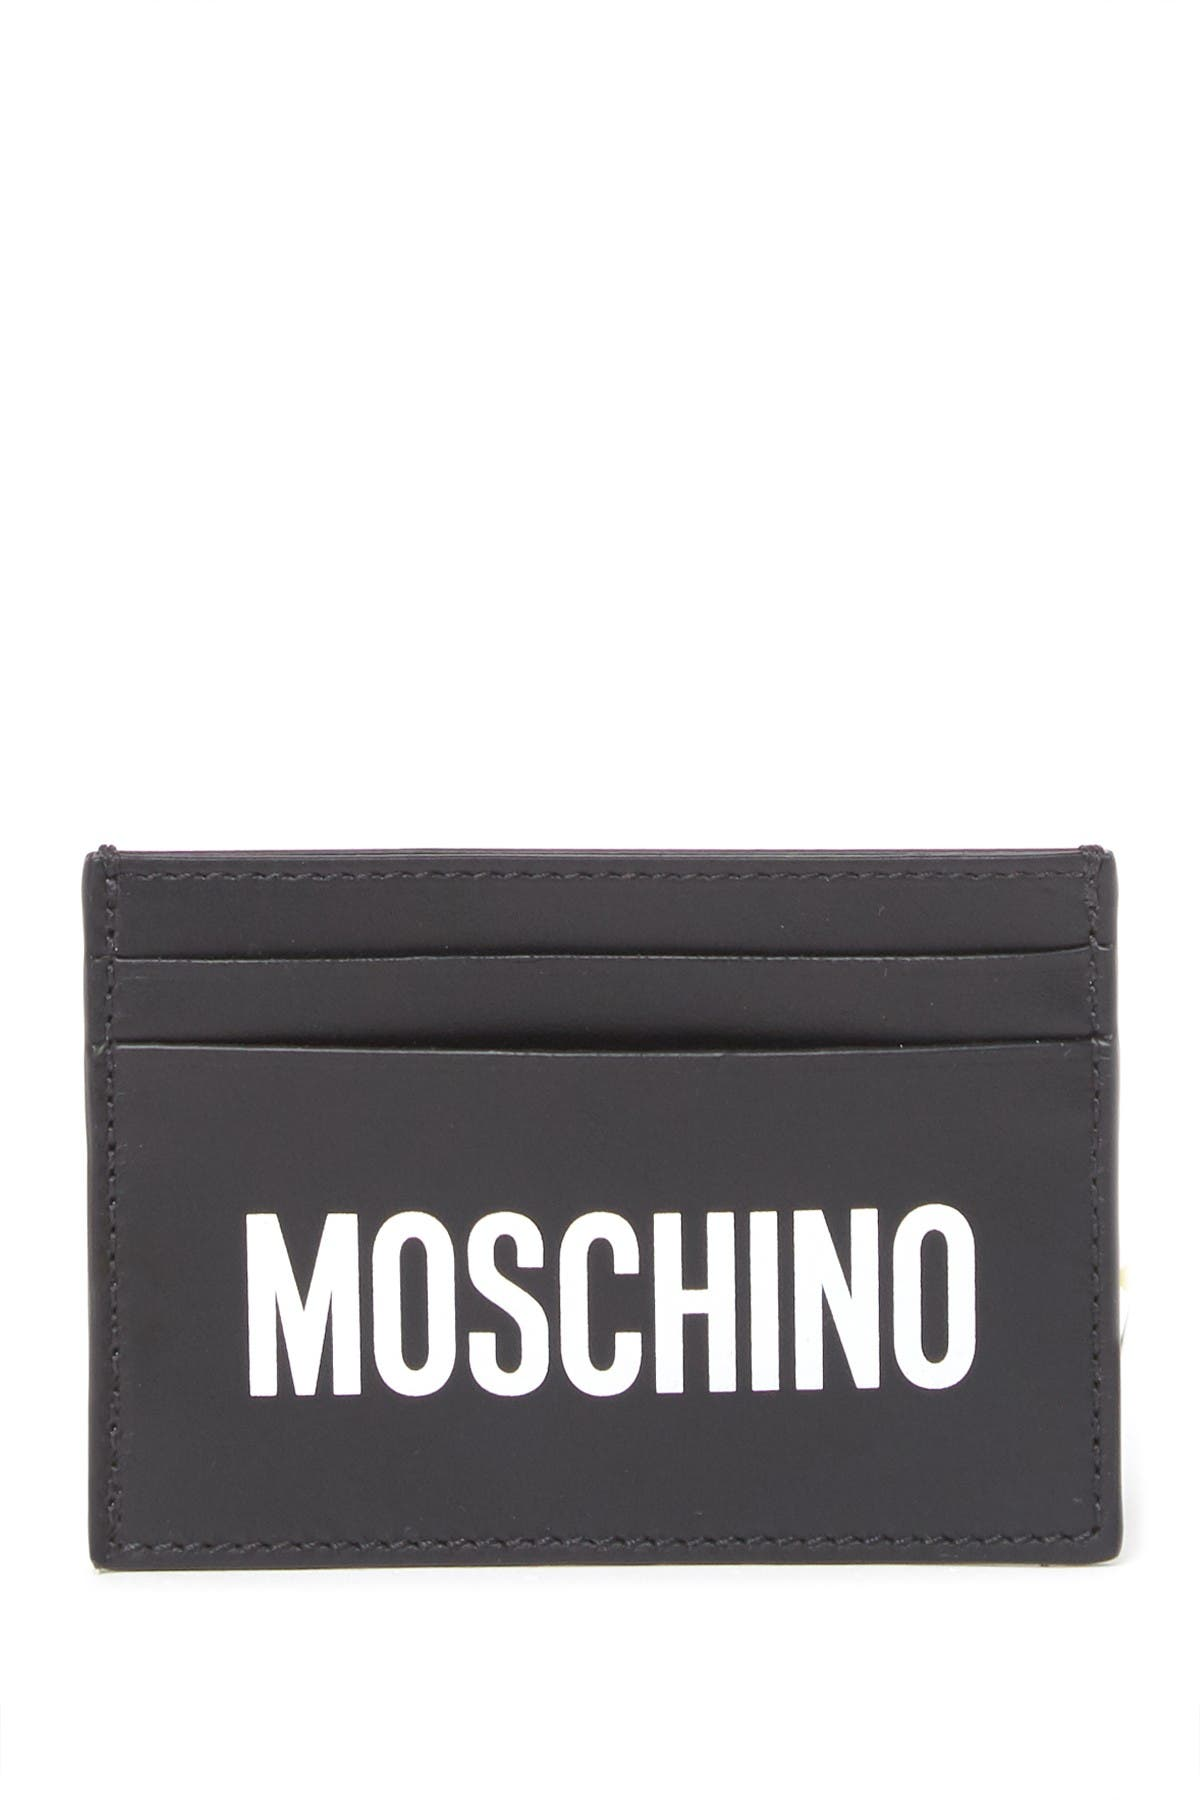 Image of MOSCHINO Logo Print Leather Cardholder Wallet